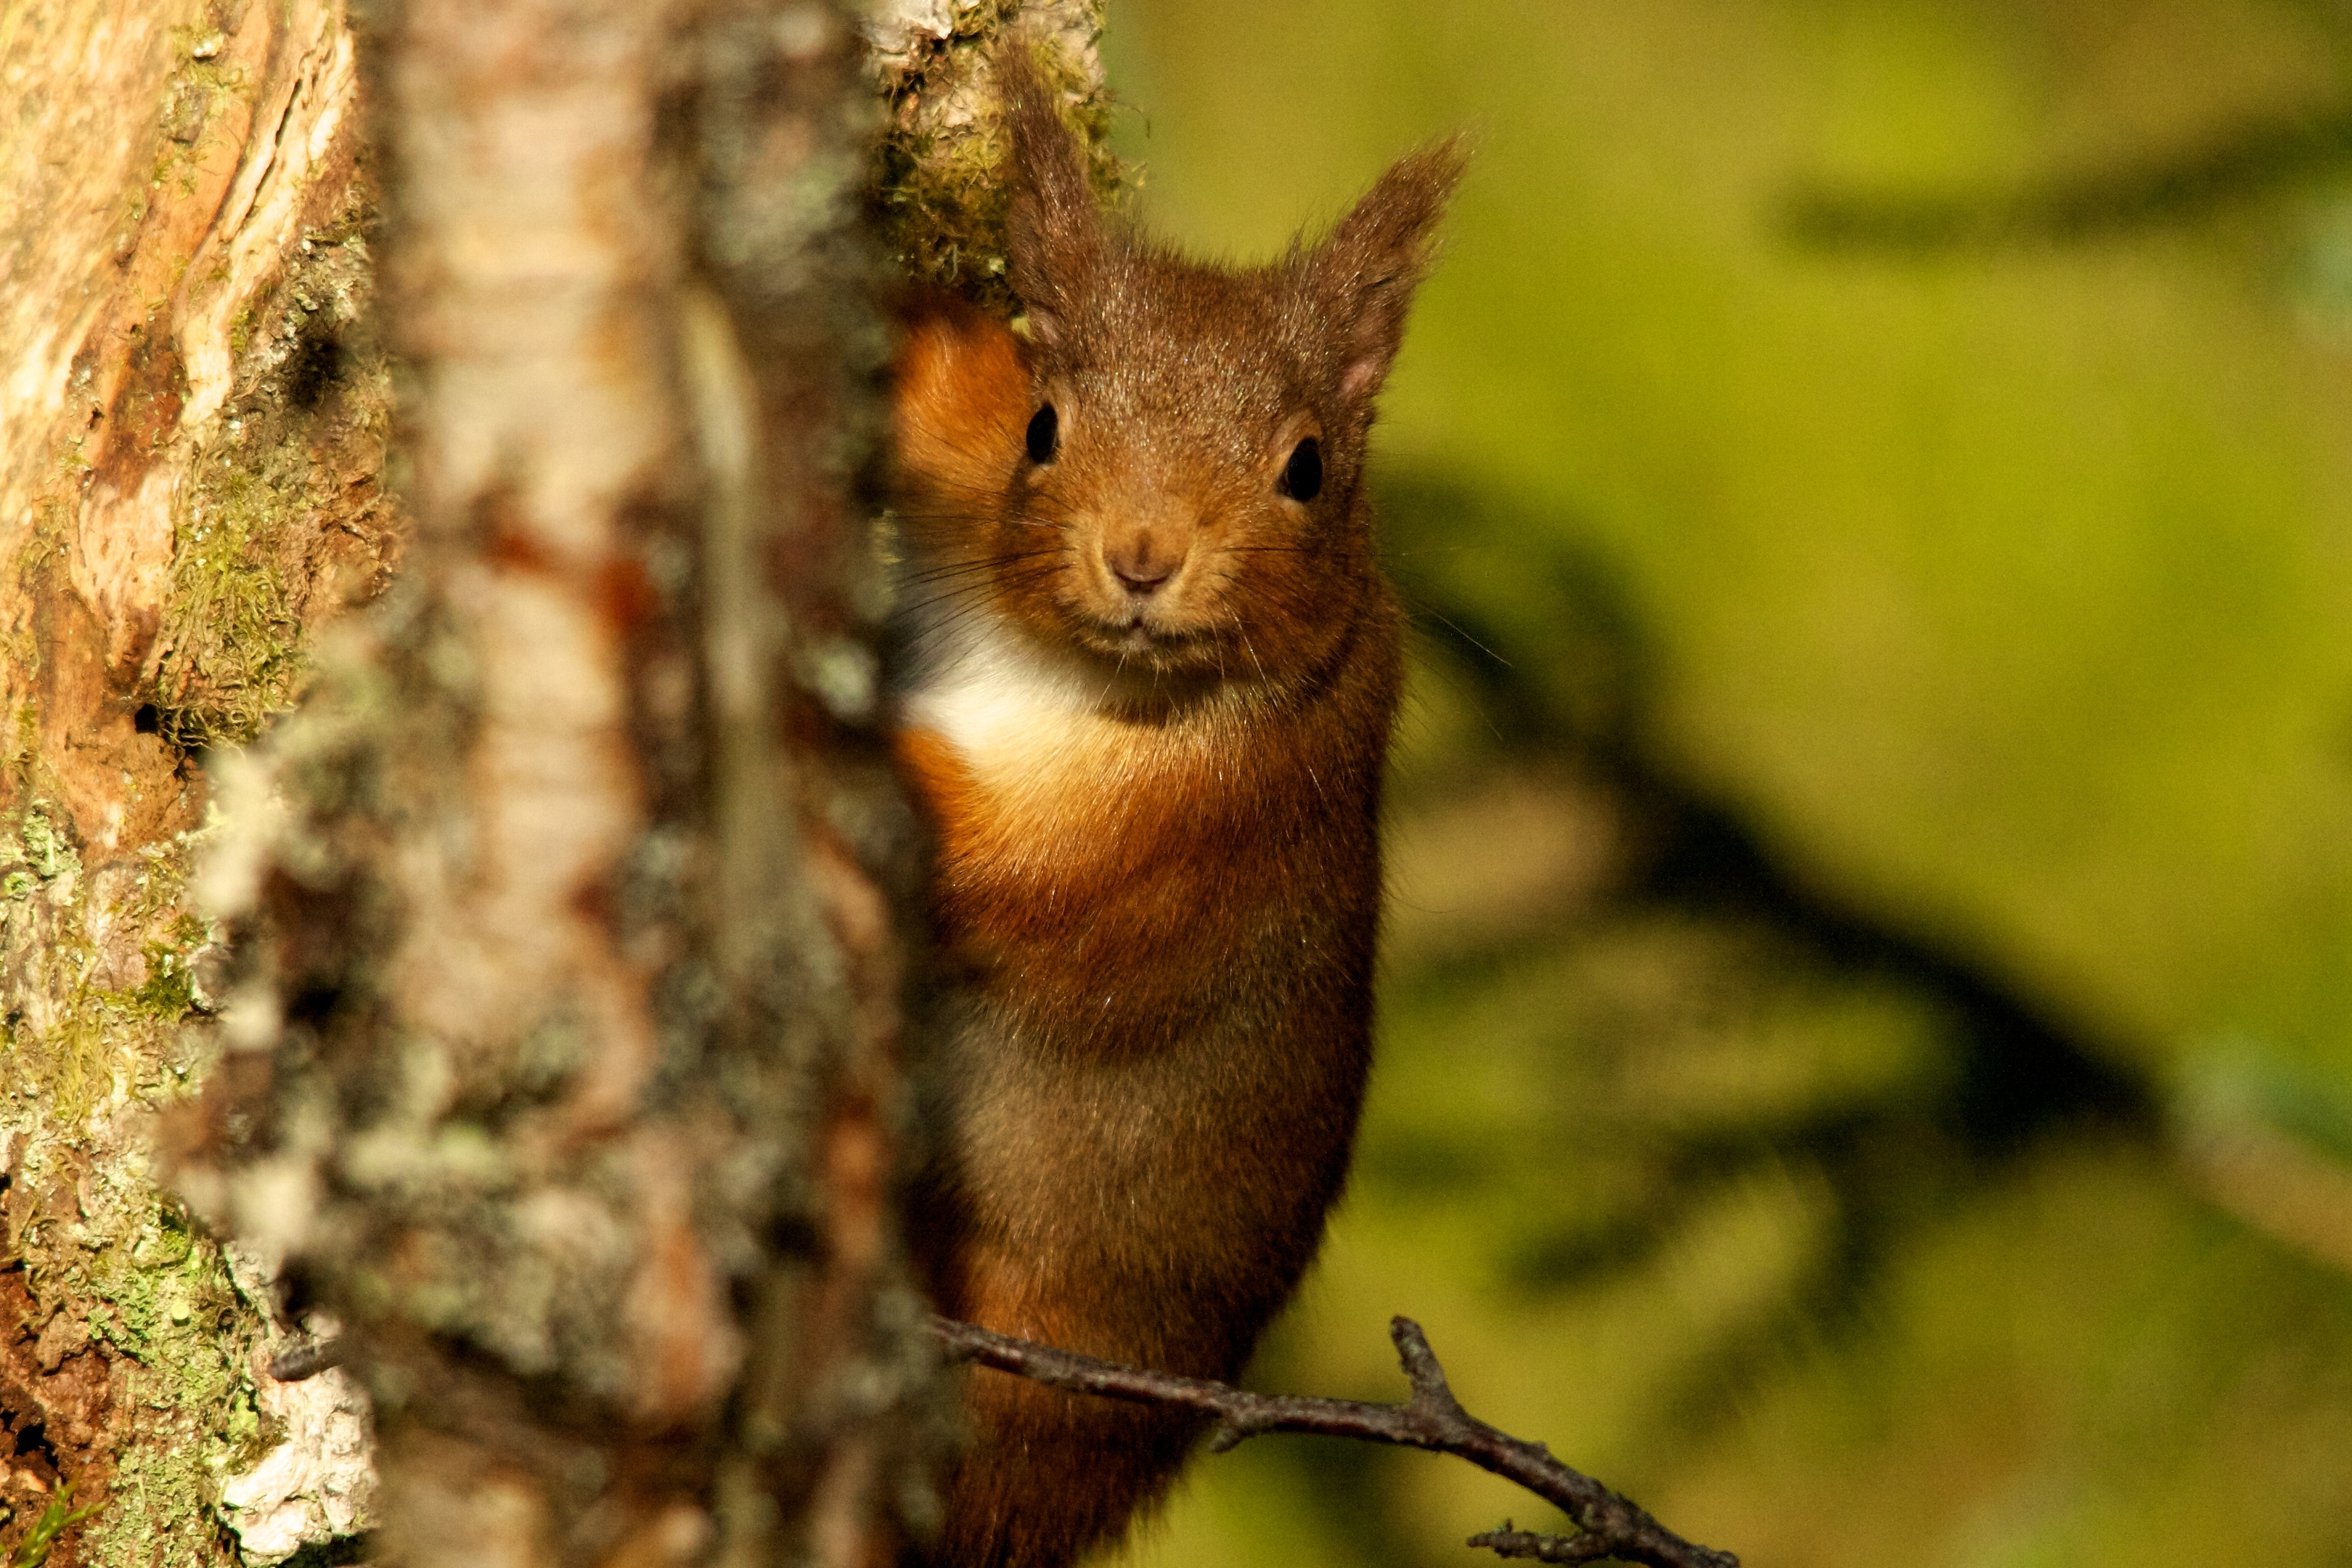 A red squirrel photographed by Stephen Willis